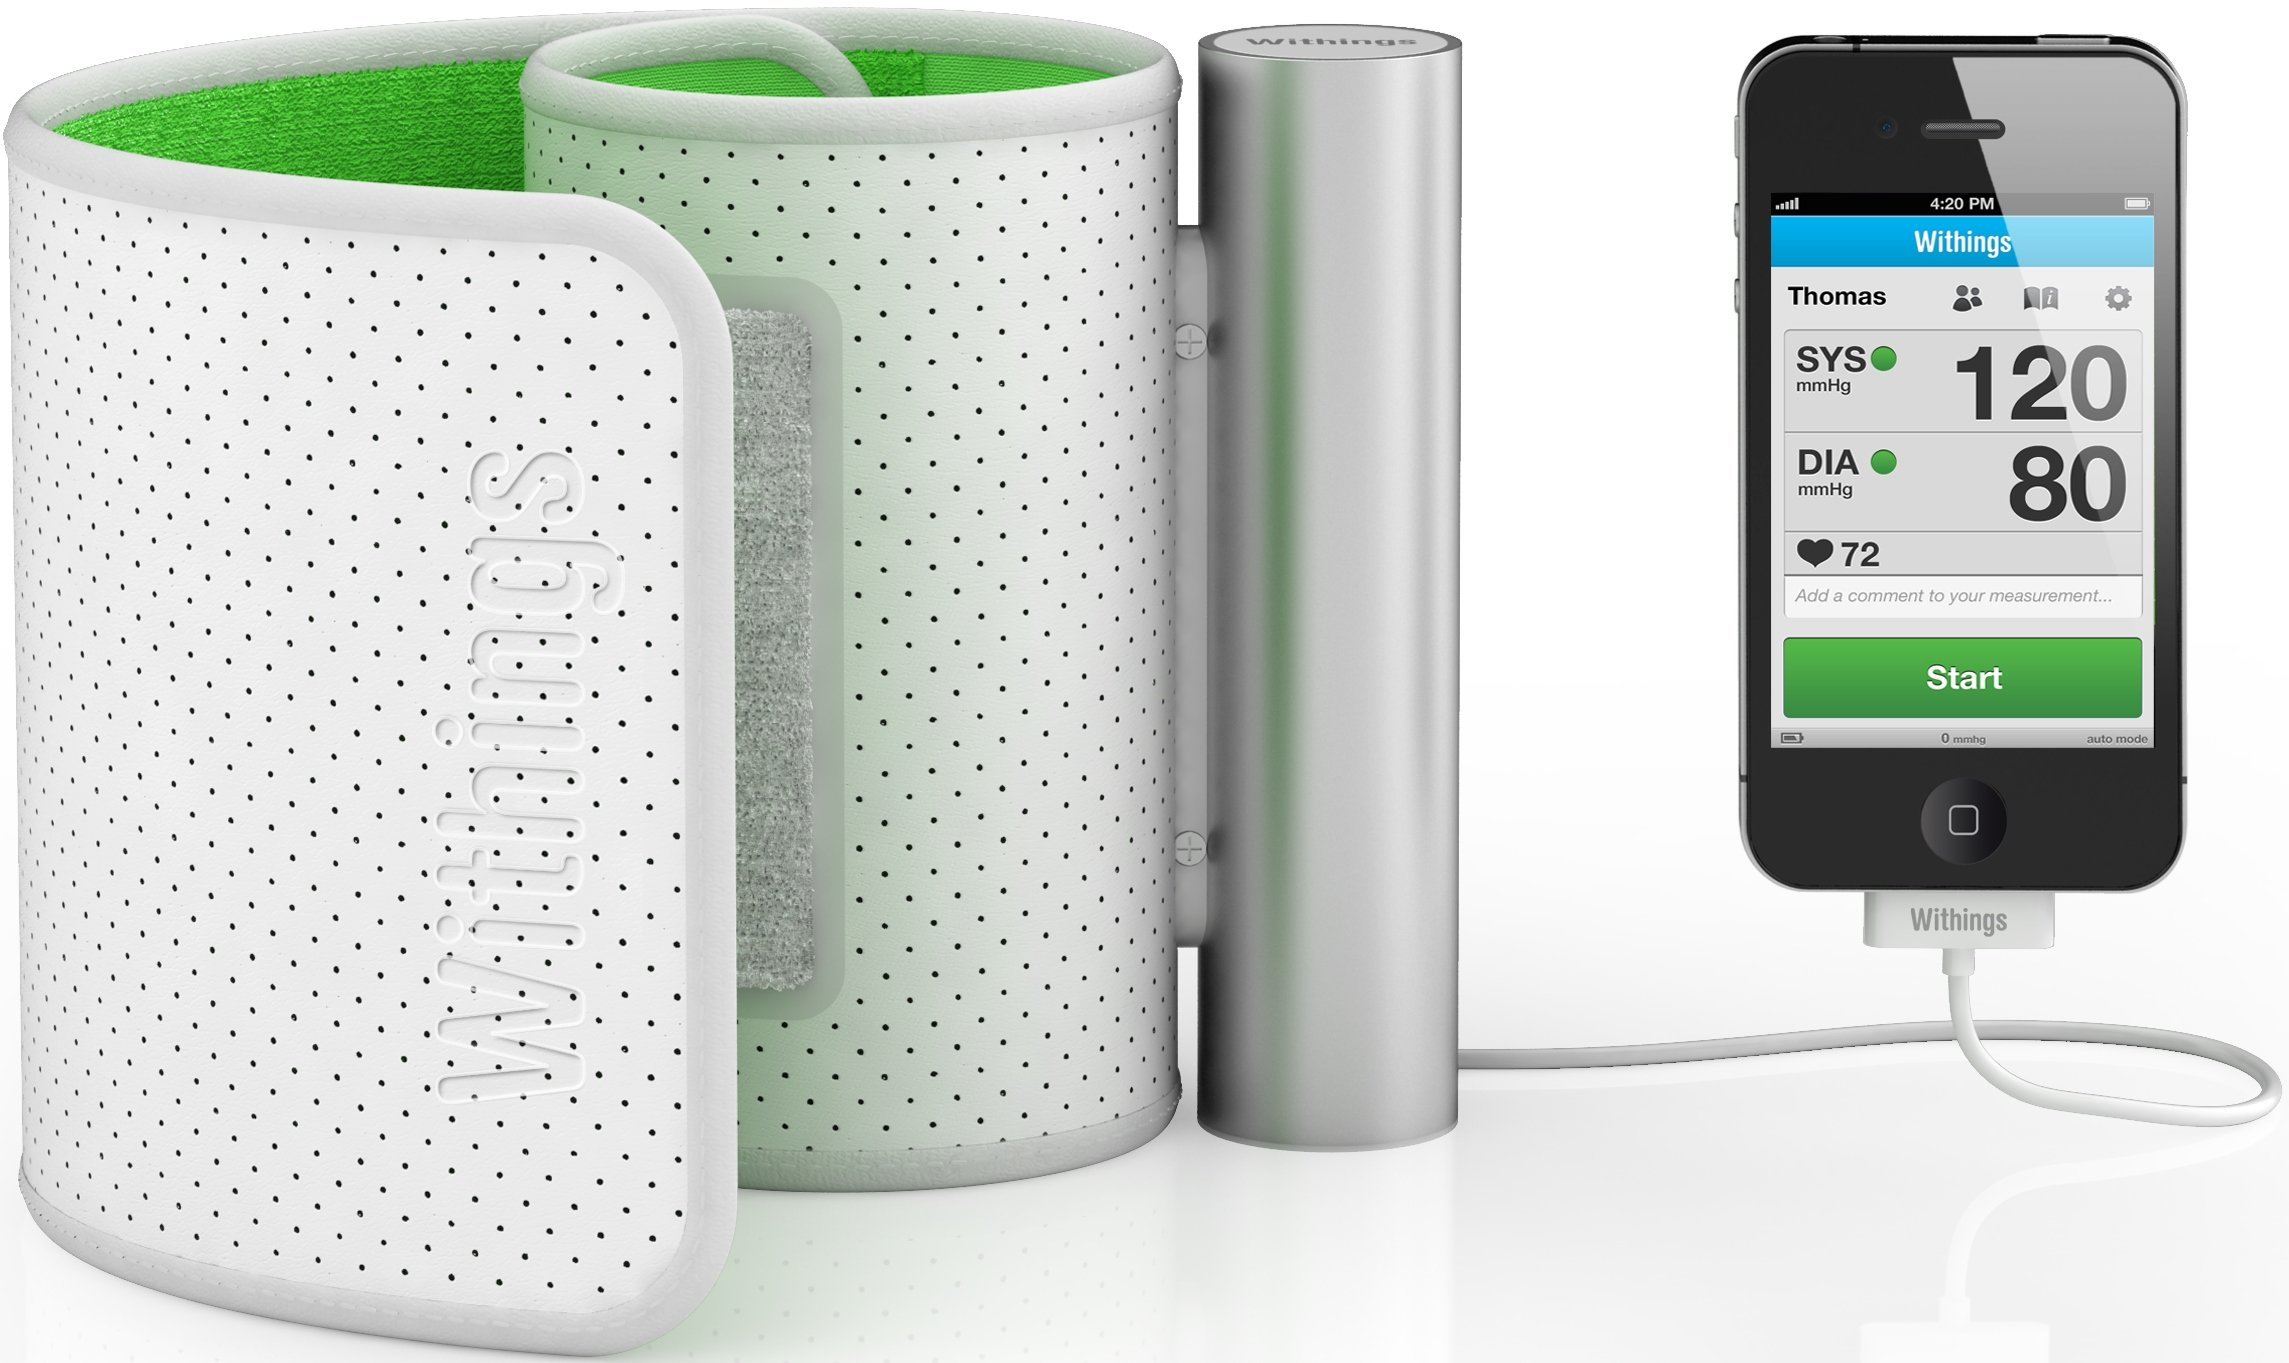 Withings Smart Blood Pressure Monitor (for iPhone, iPad and iPod touch)